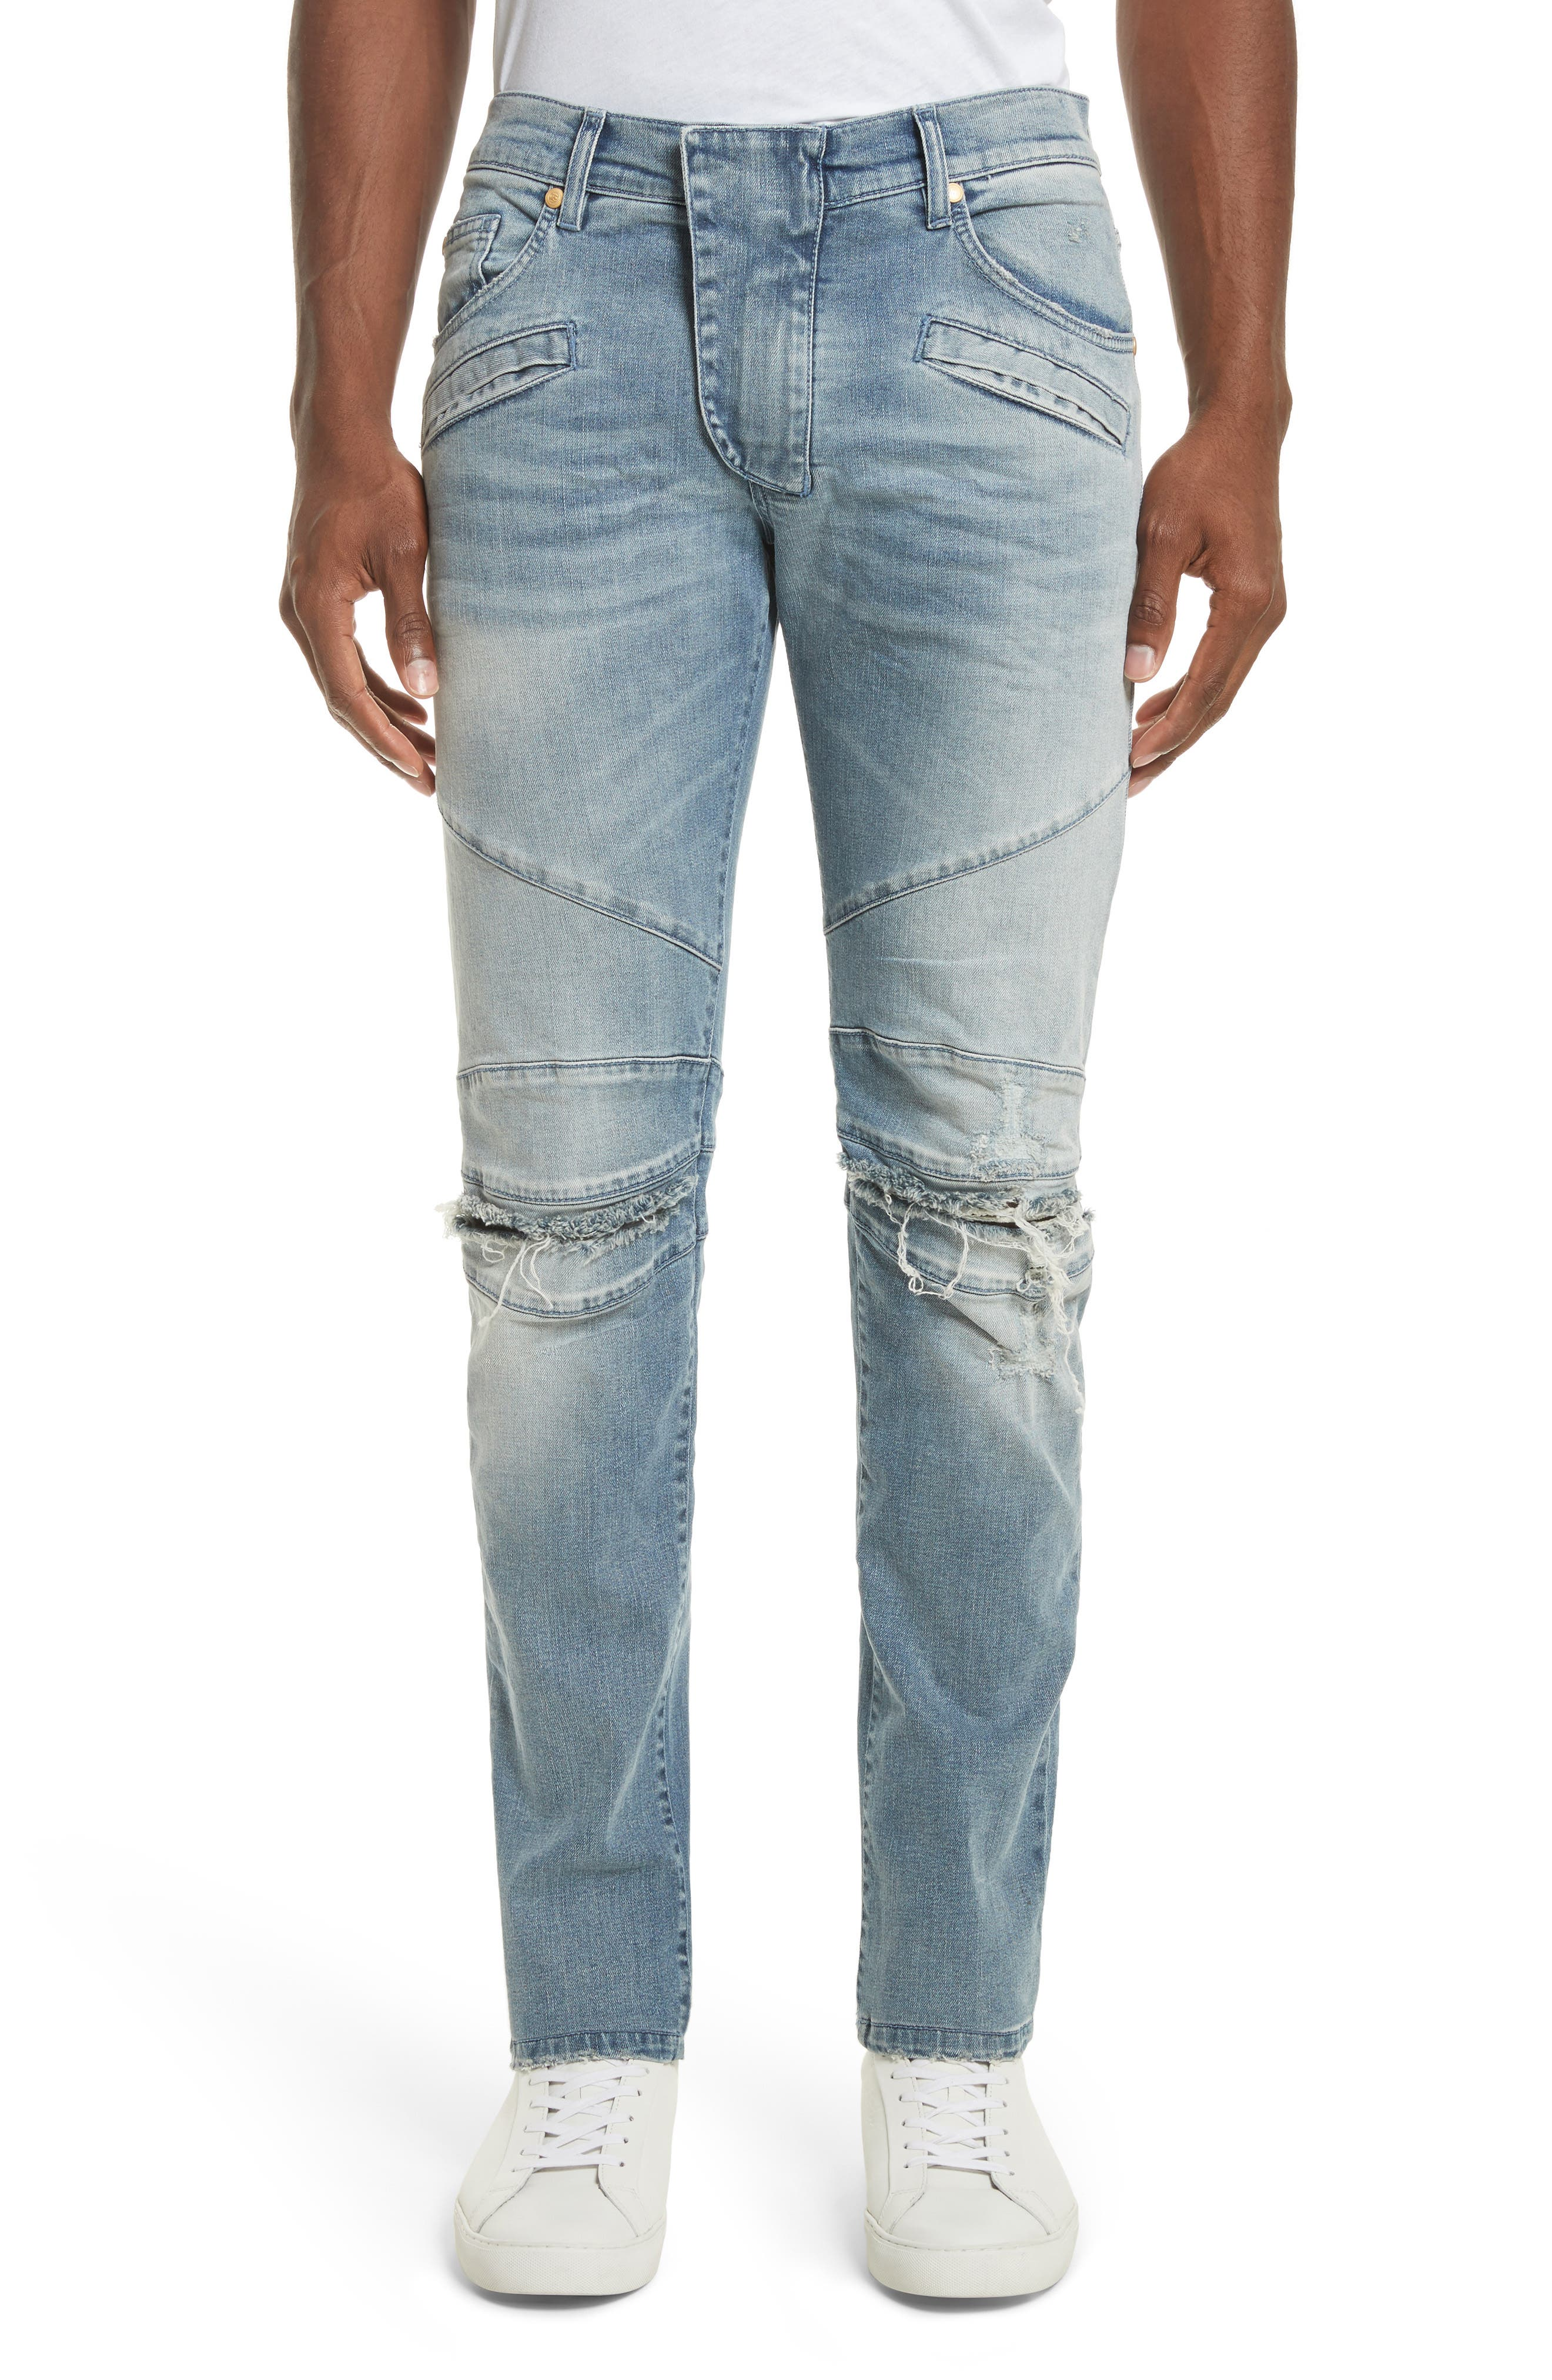 Slit Knee Jeans,                             Main thumbnail 1, color,                             Blue Denim